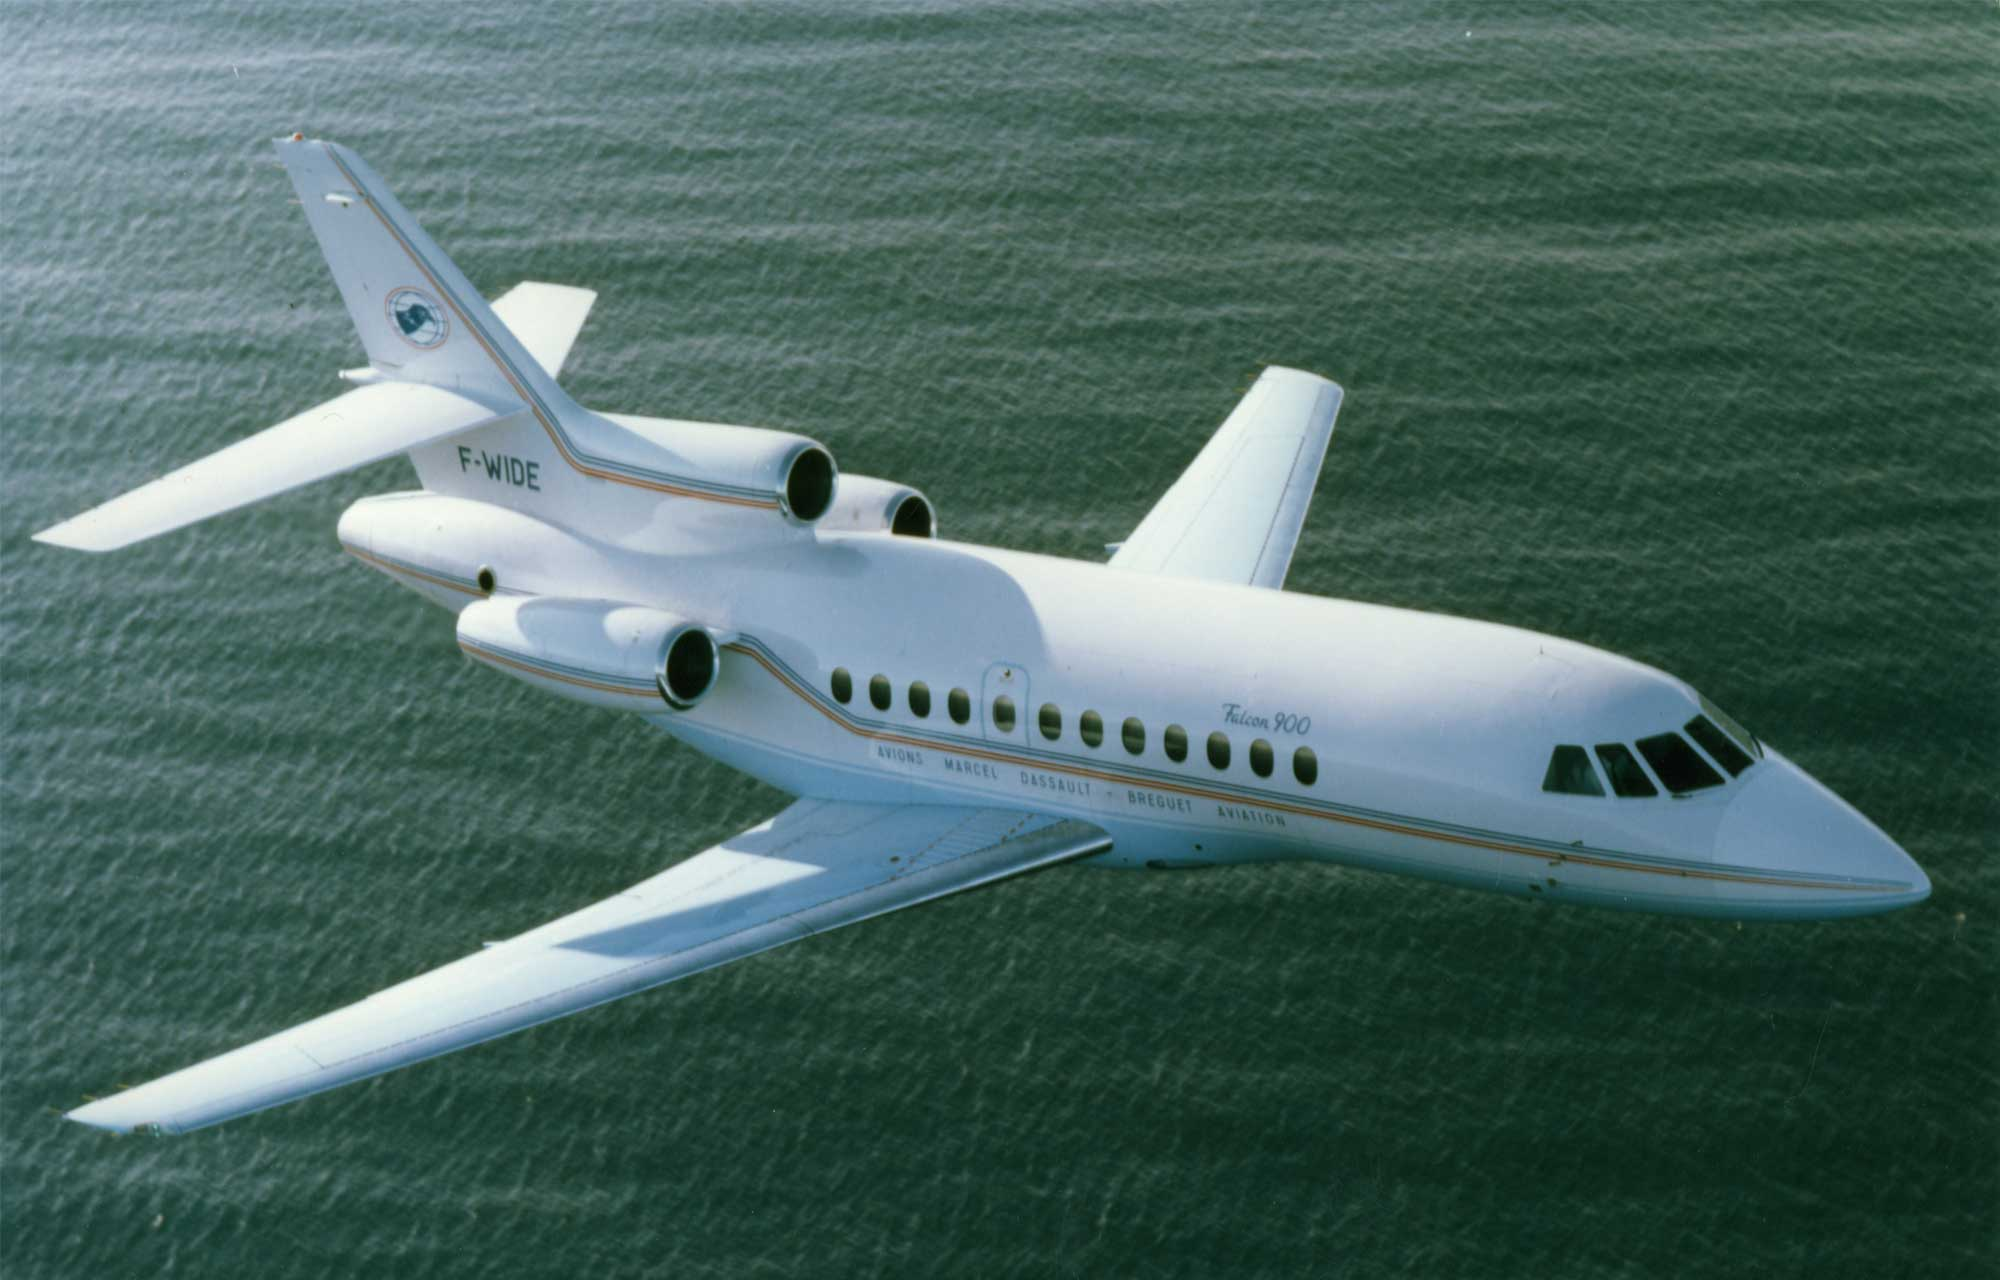 Related model: Dassault Falcon 900B